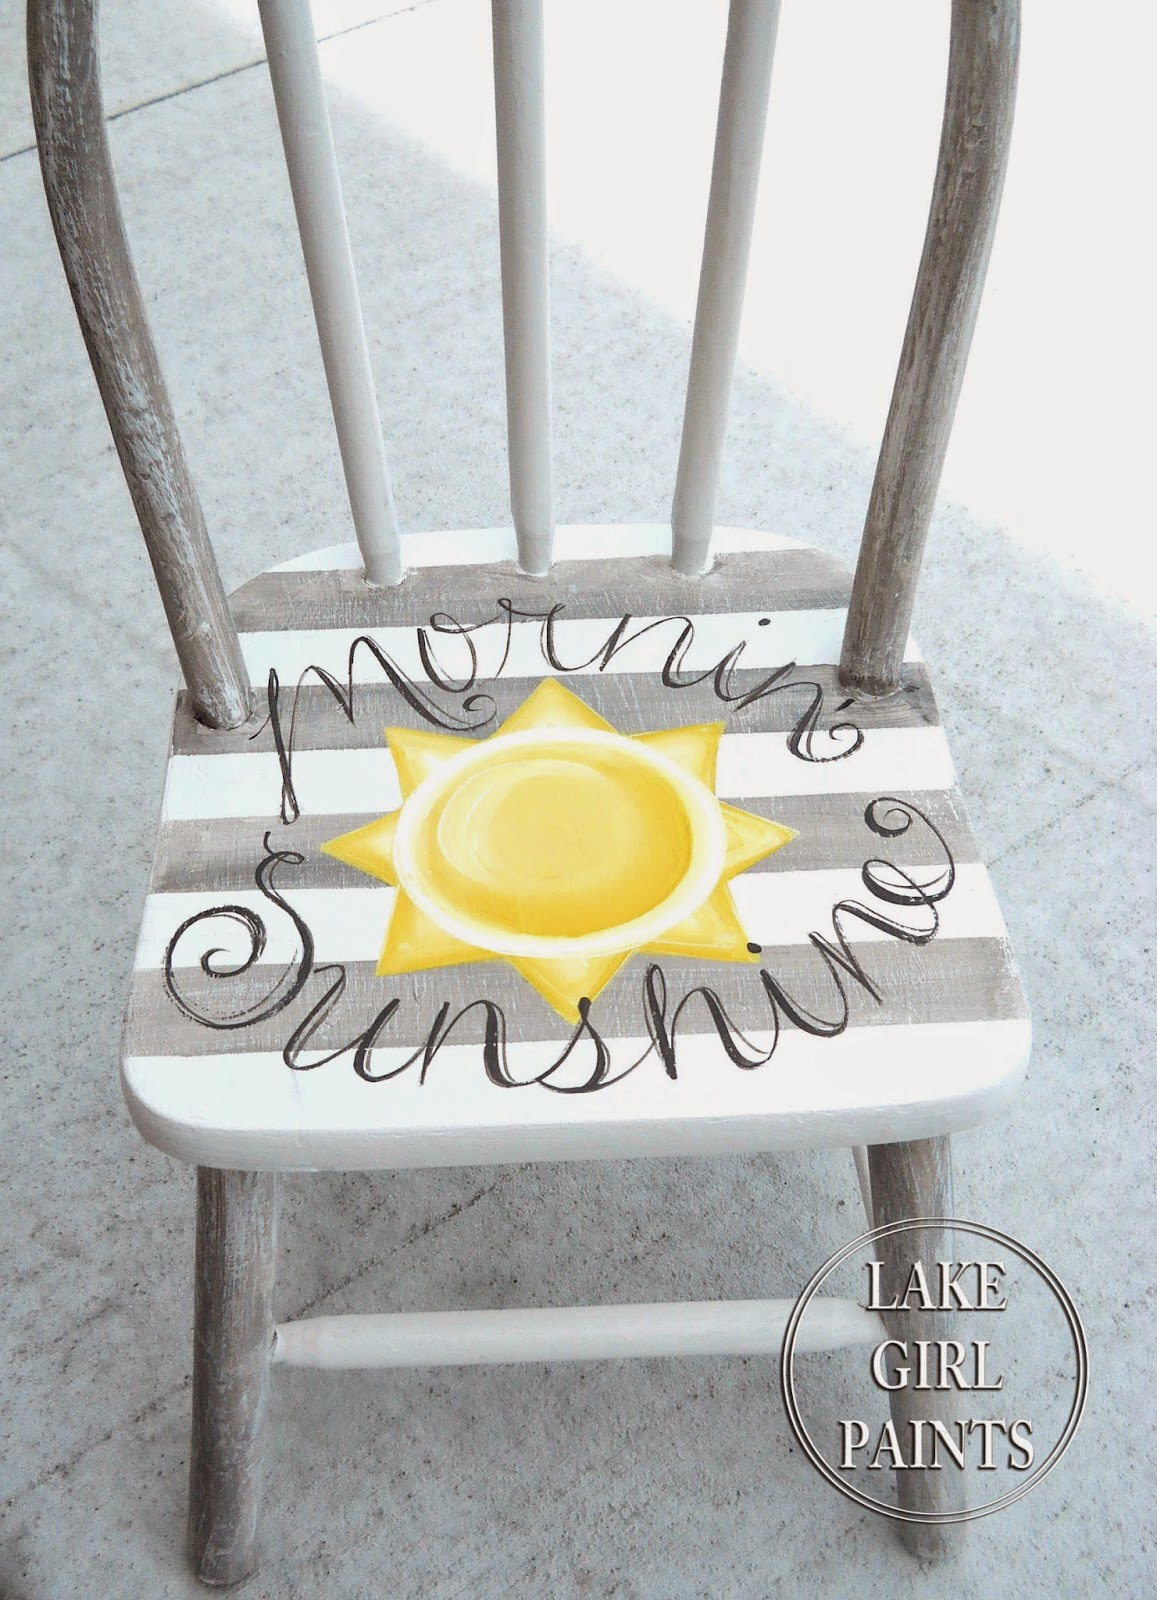 Lake girl paints gray white and yellow children 39 s chair for Painted kitchen chairs